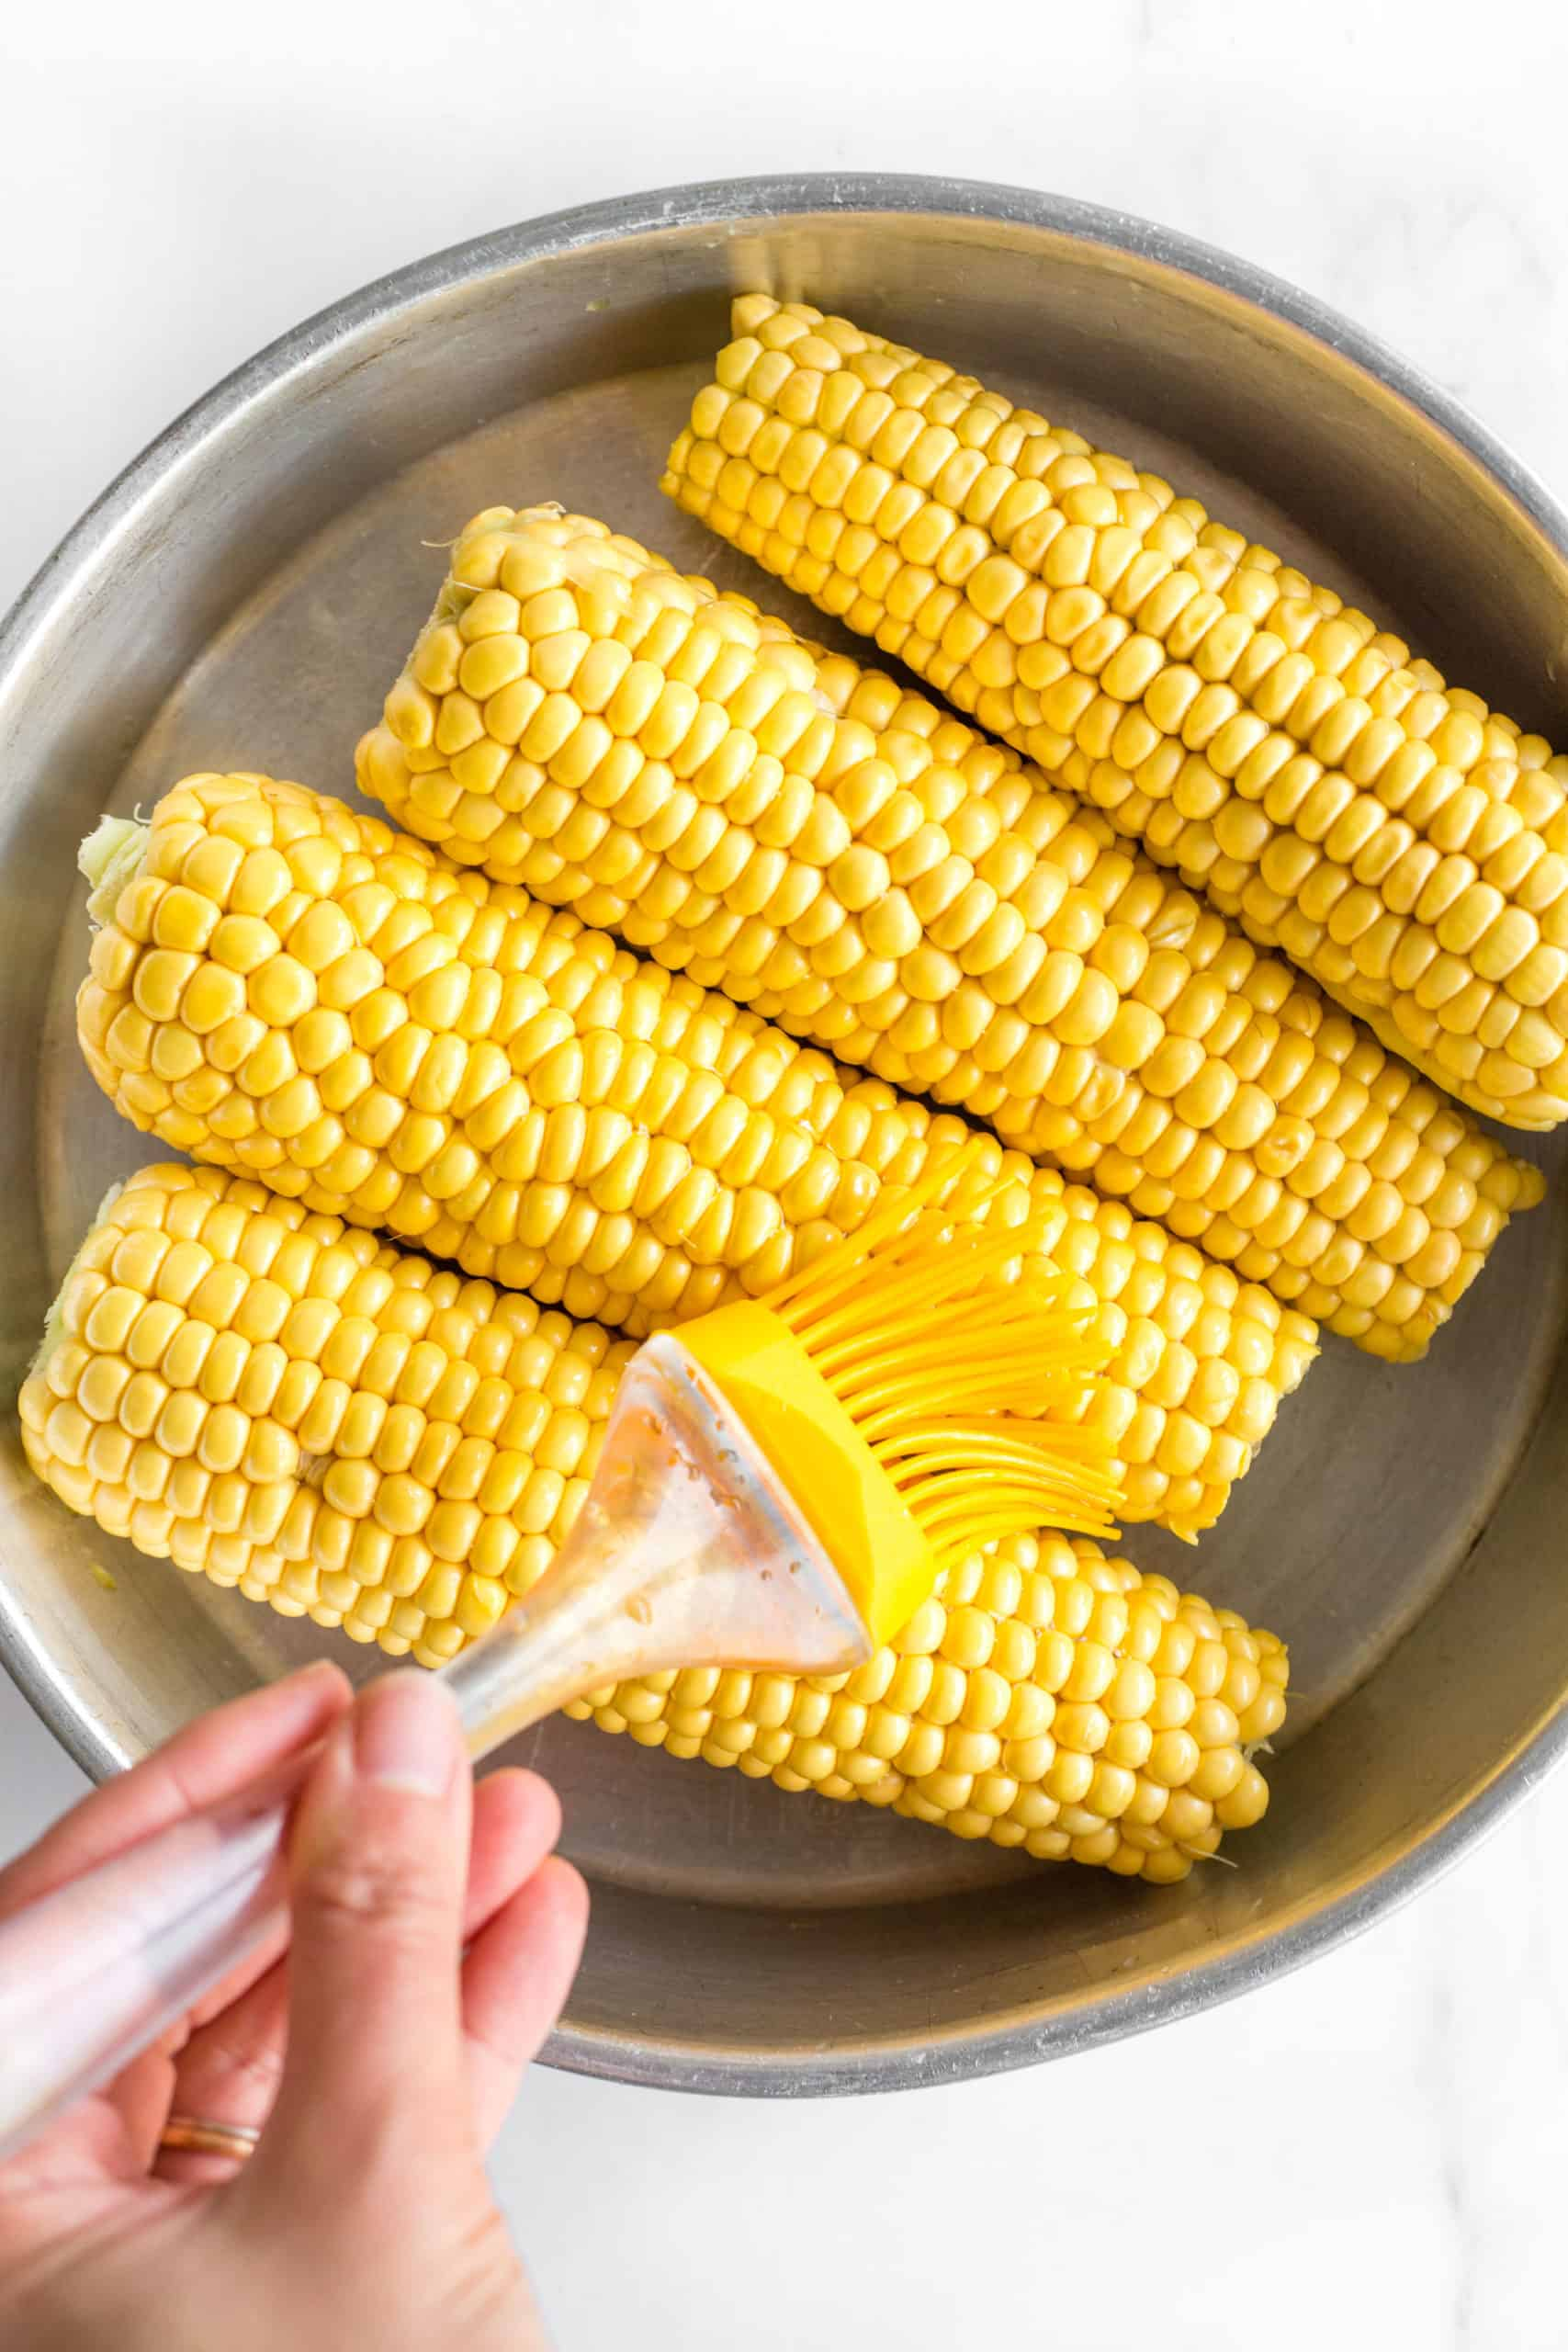 Fresh corn on the cob being brushed with olive oil.